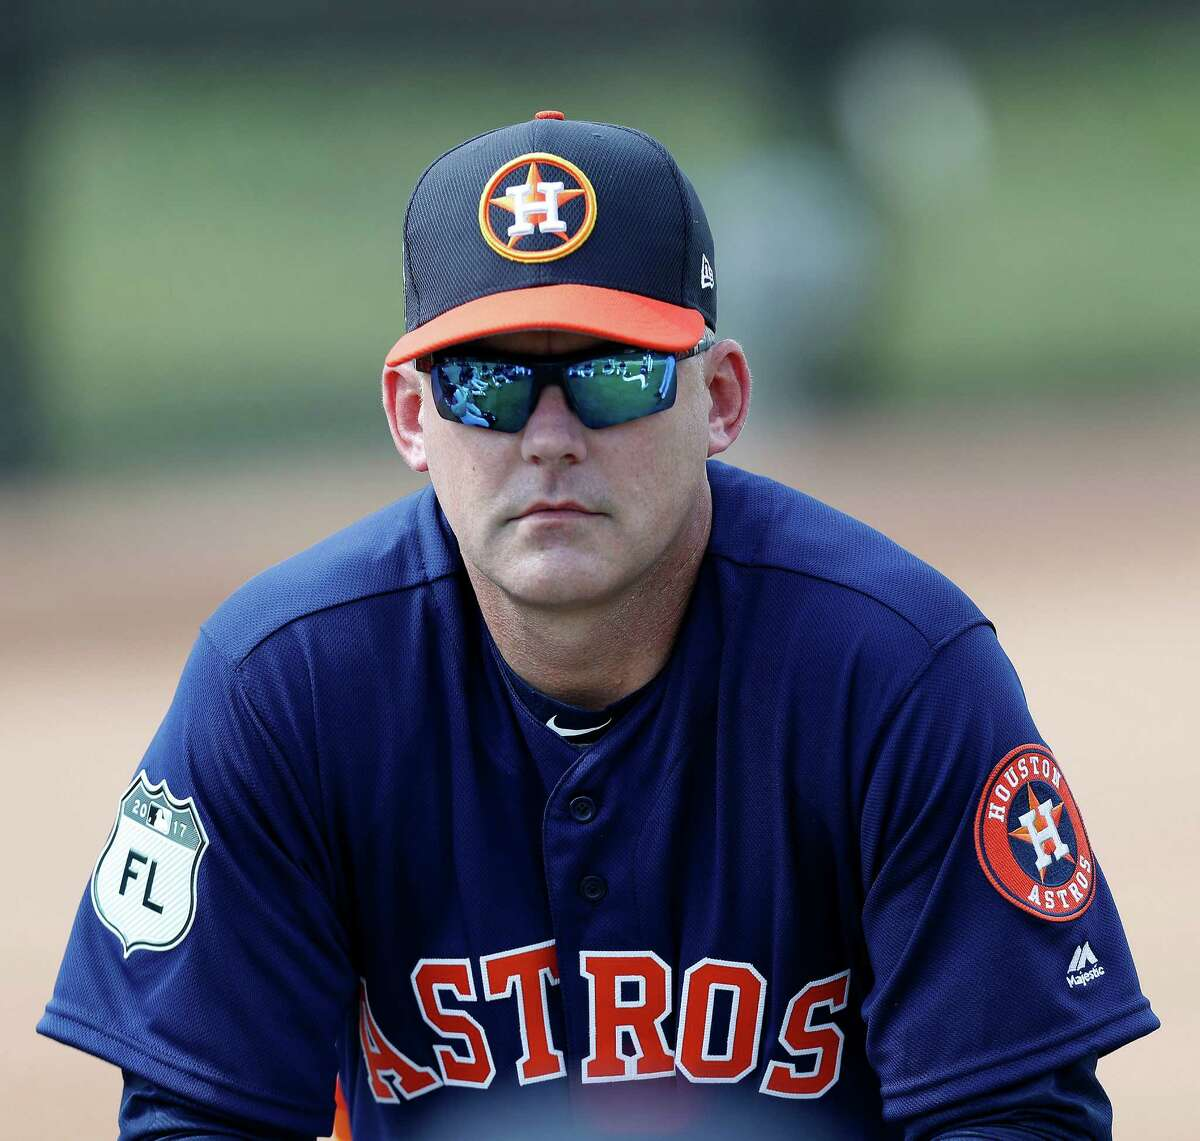 Houston Astros manager A.J. Hinch watches as the Astros pitchers and catchers held their first workout of spring training at The Ballpark of the Palm Beaches, in West Palm Beach, Florida, Tuesday, February 14, 2017.